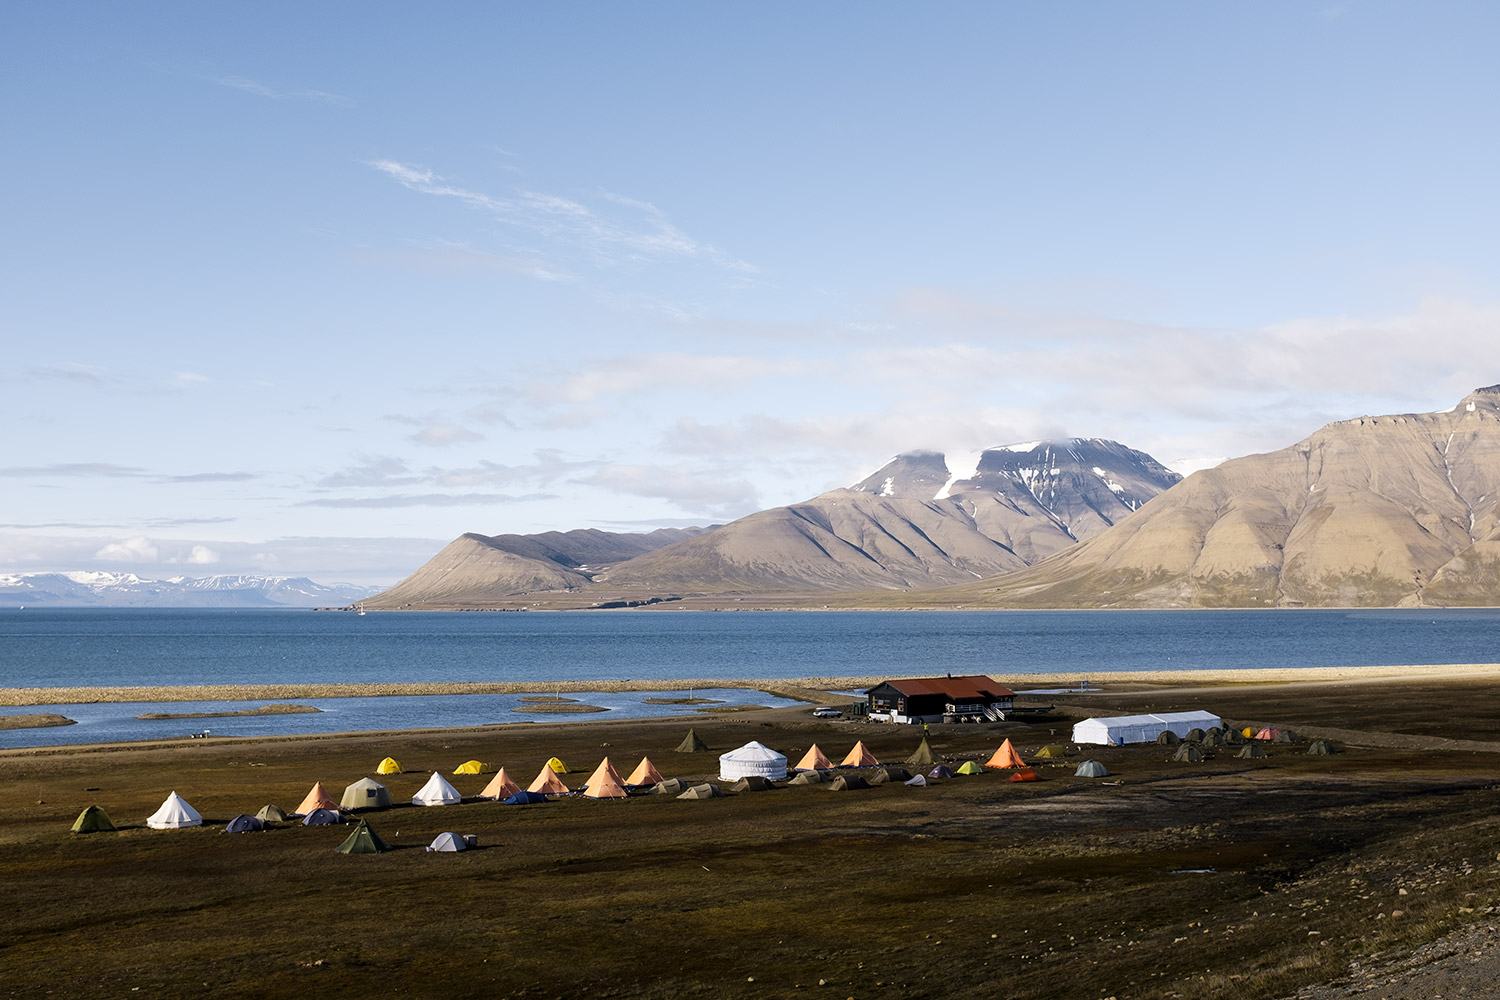 Our campsite in Longyearbyen. View from the AIRPORT.